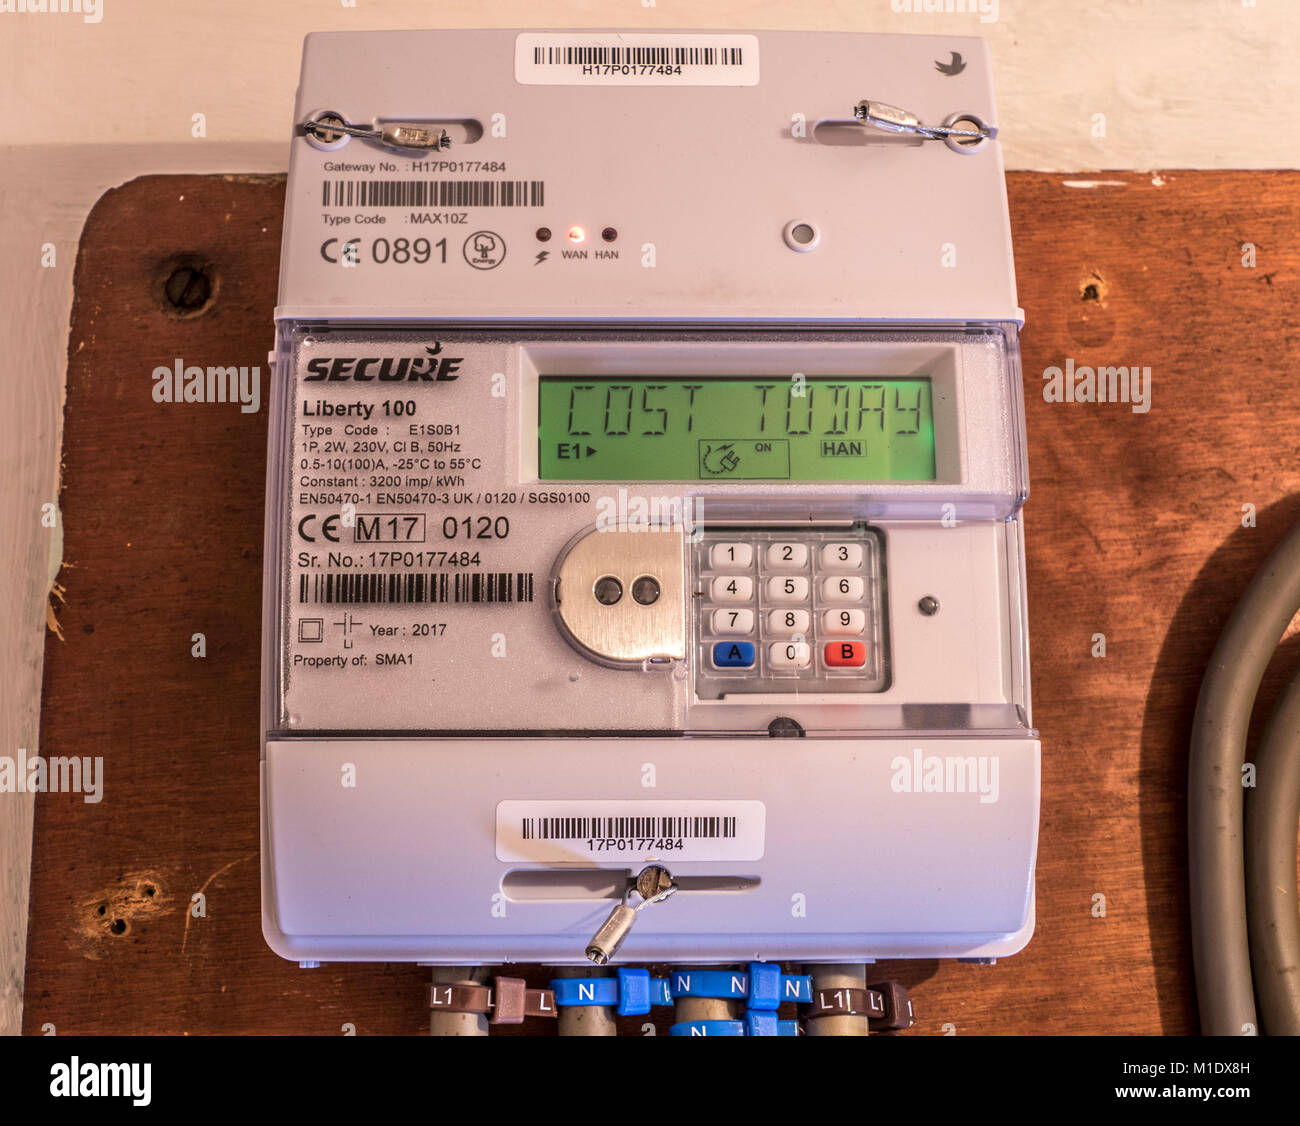 Secure Liberty 100 smart electricity meter, measuring